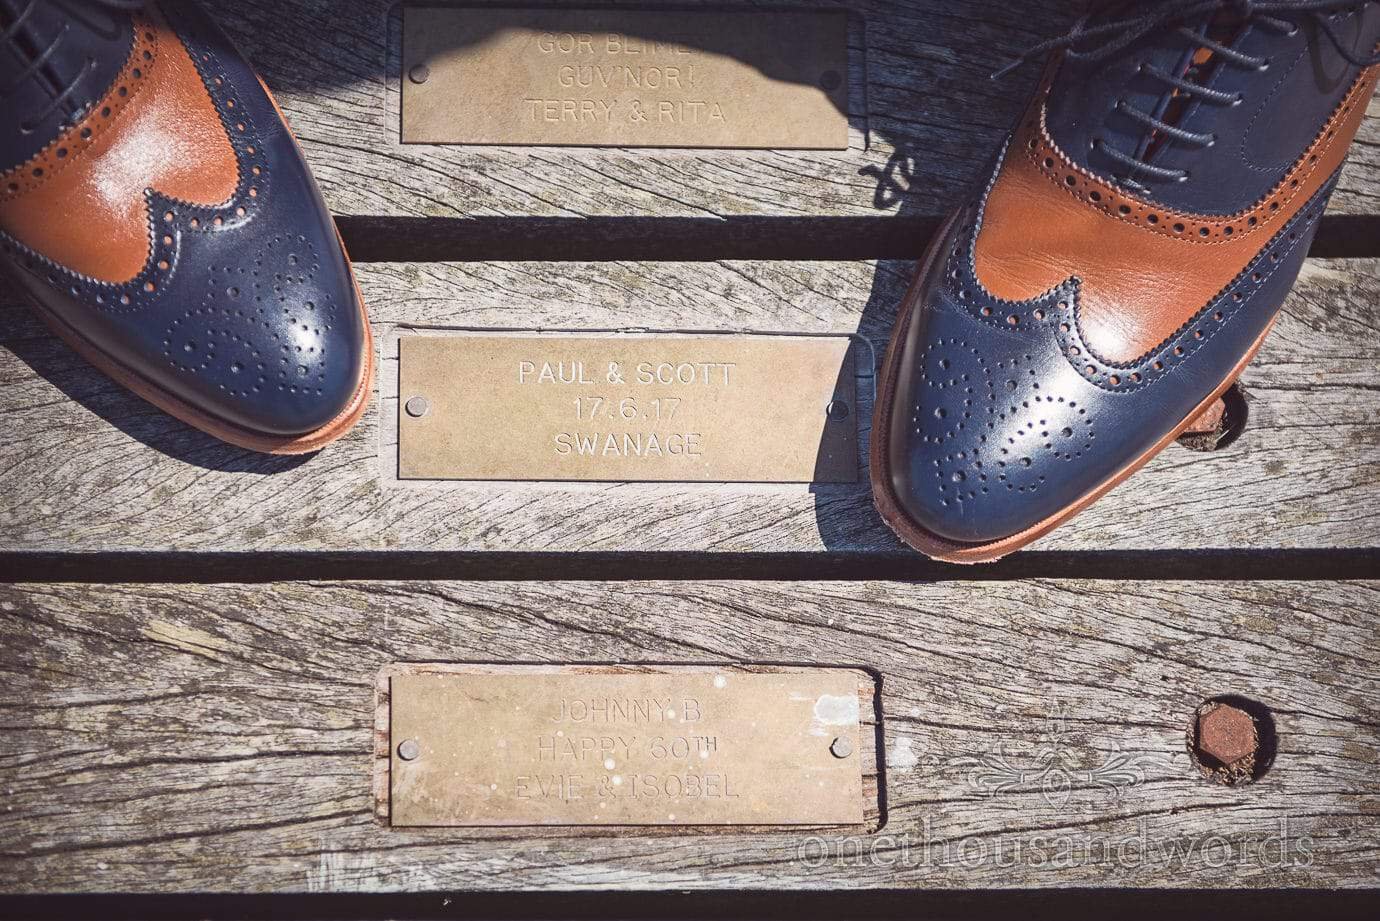 Swanage Pier engraved bras plaque commemorating wedding date with groom's shoes